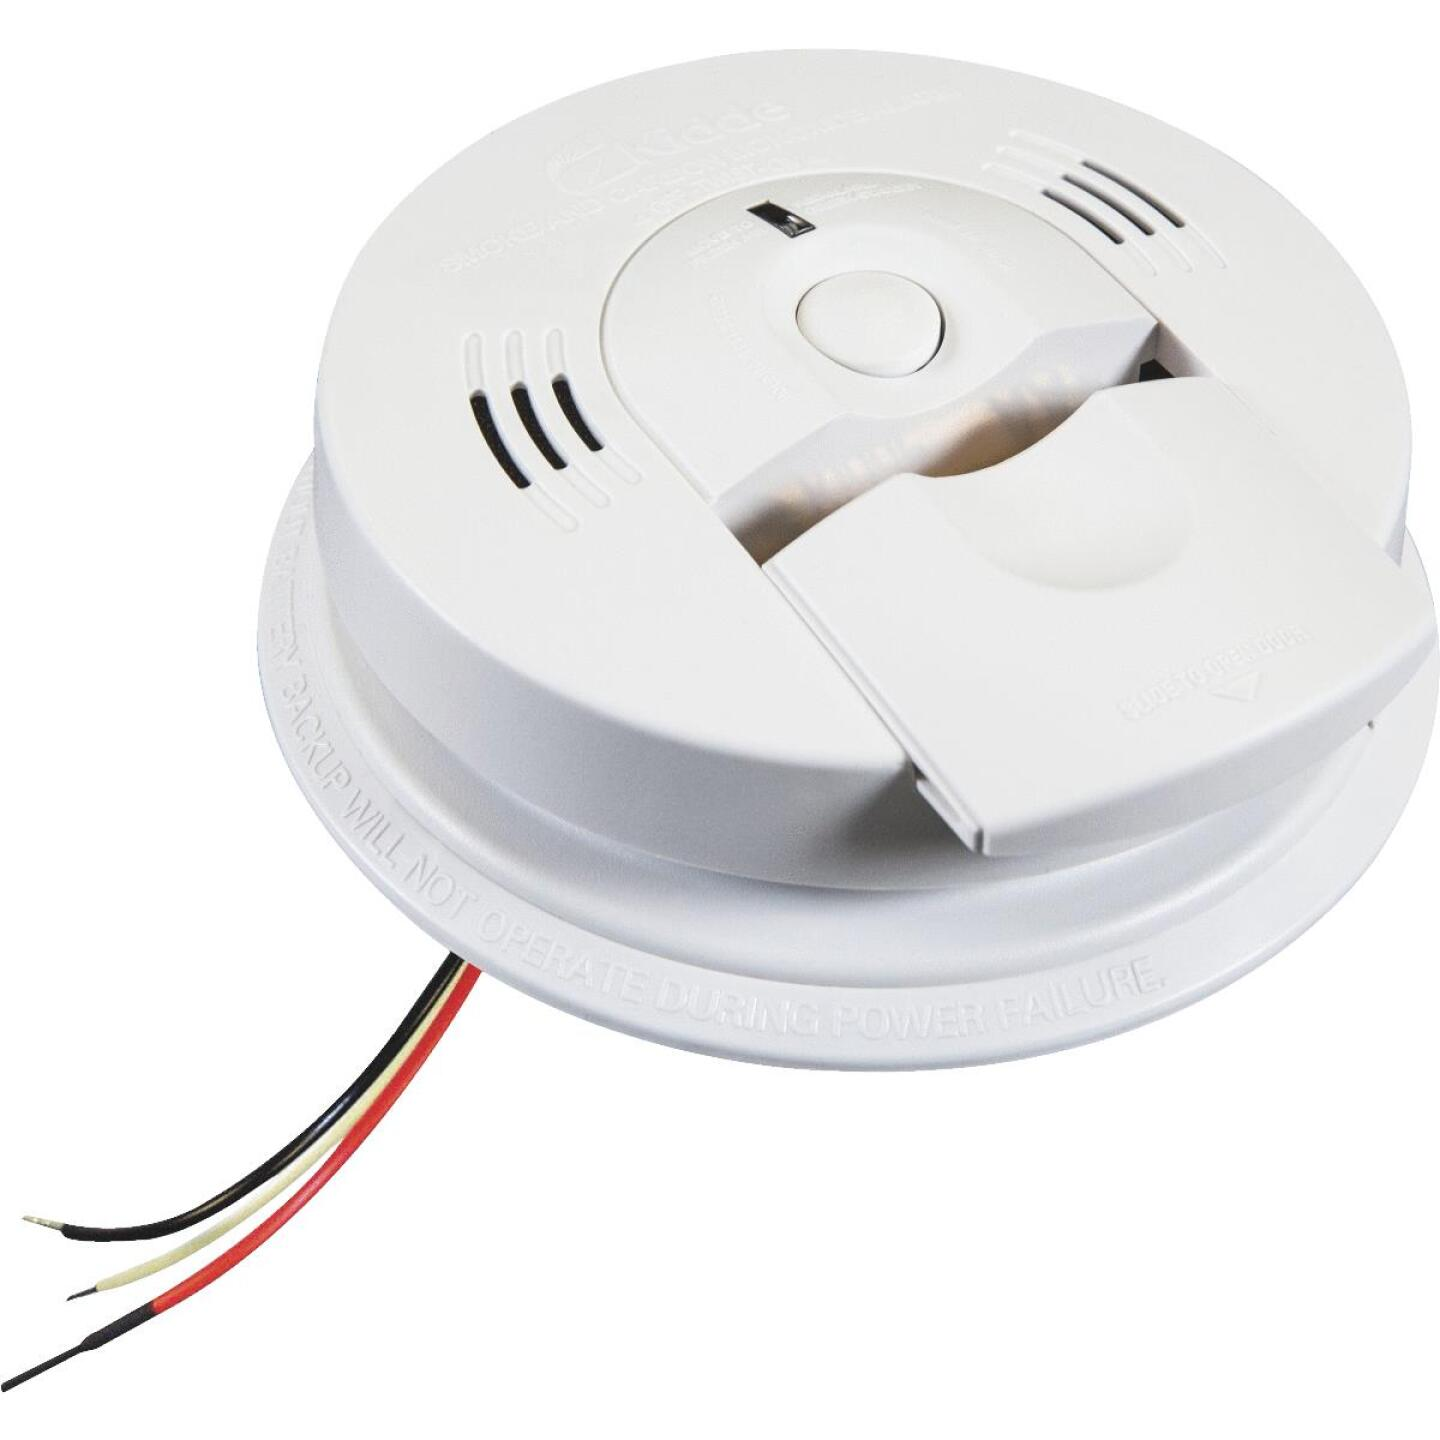 Kidde KN-COSM-IBA Hardwired 120V Electrochemical/Ionization Carbon Monoxide and Smoke Alarm Image 1